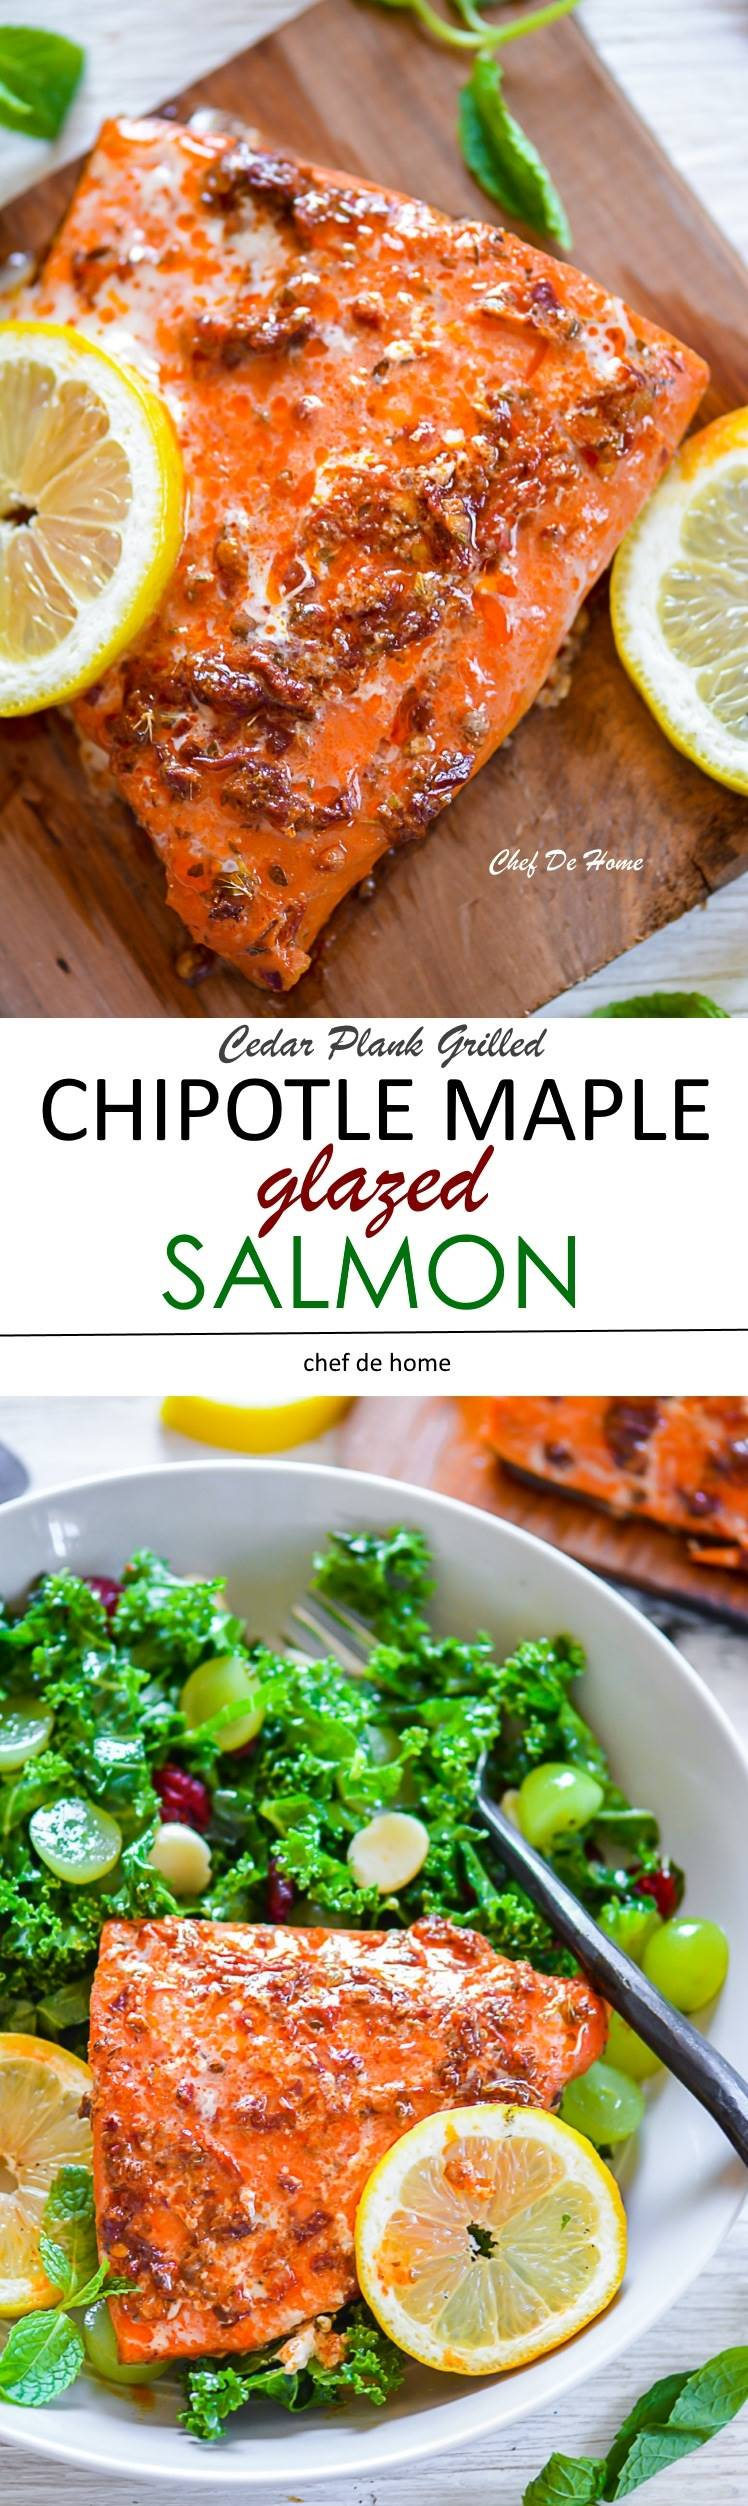 Chipotle Maple Glazed Salmon with Kale Salad | chefdehome.com